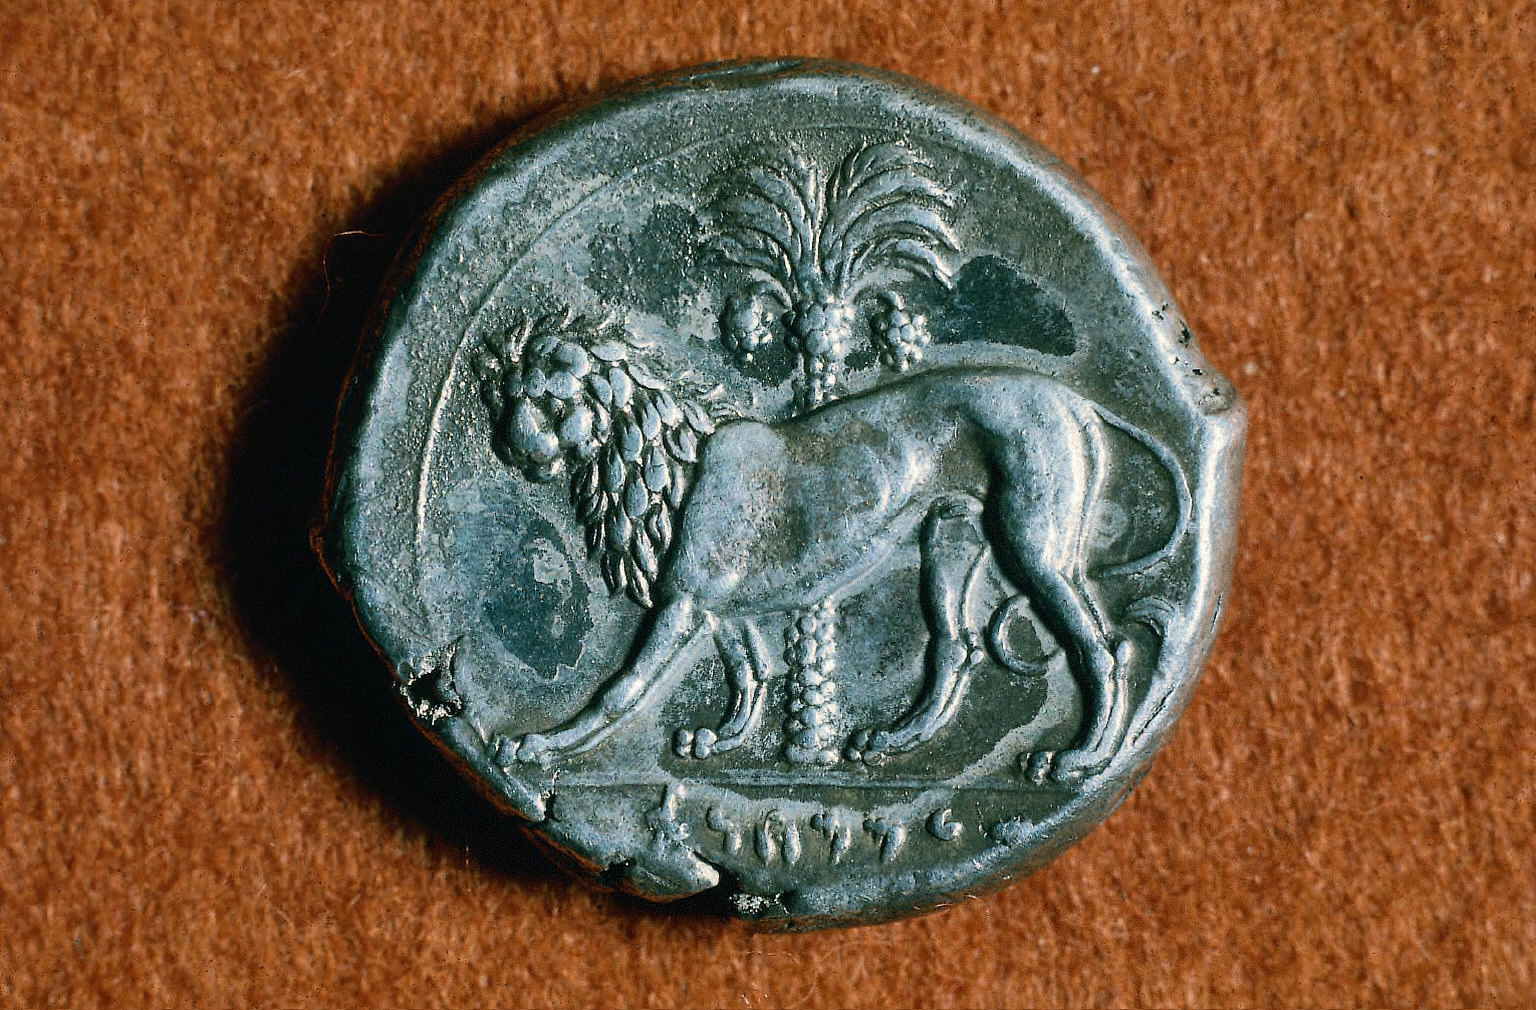 Siculo-Punic tetradrachm with head of a queen